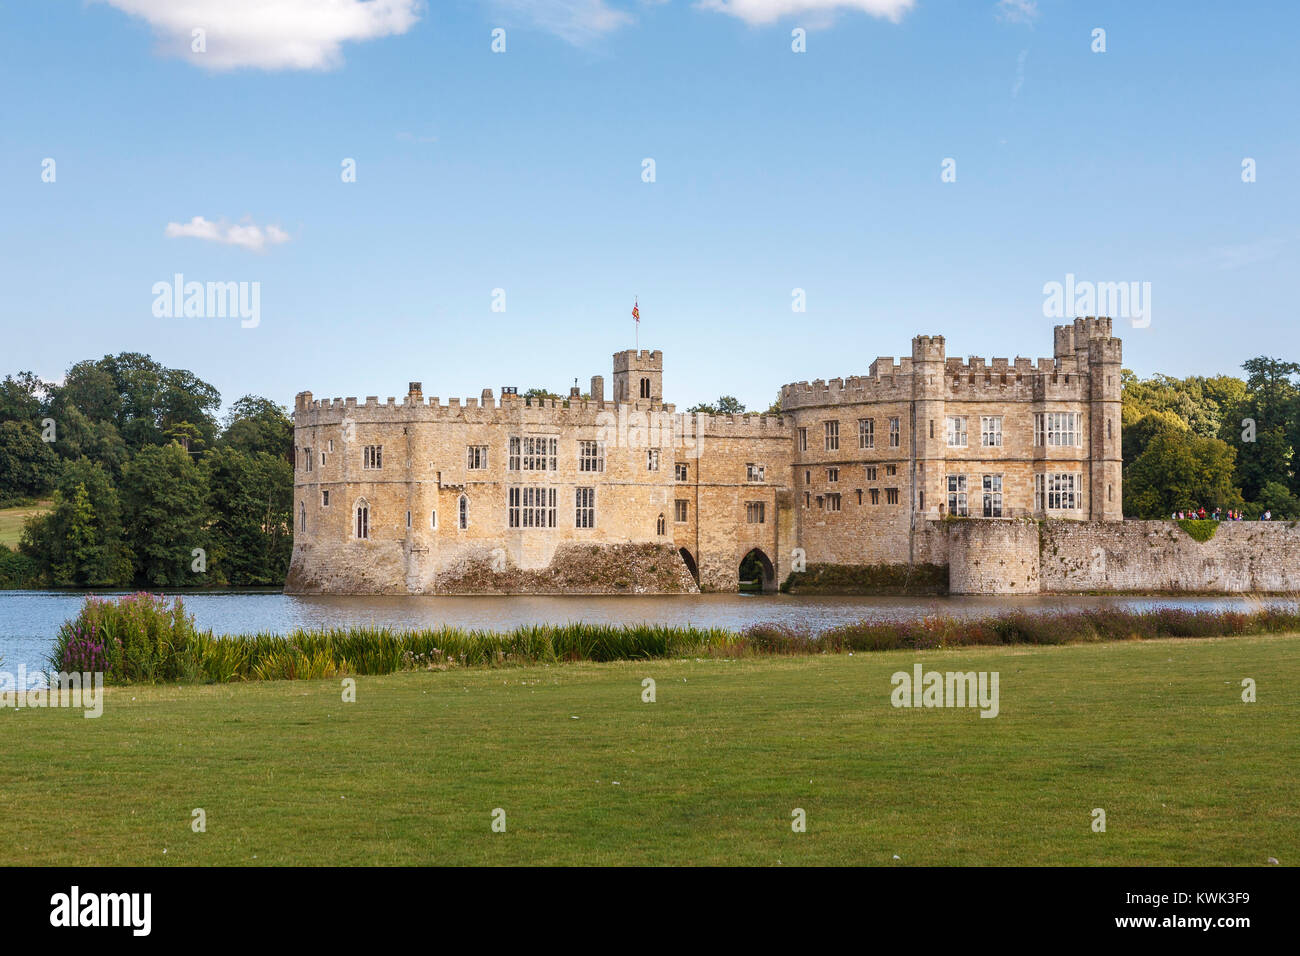 View of the exterior of Leeds Castle and moat, near Maidstone, Kent, southeast England, UK on a sunny summer's - Stock Image